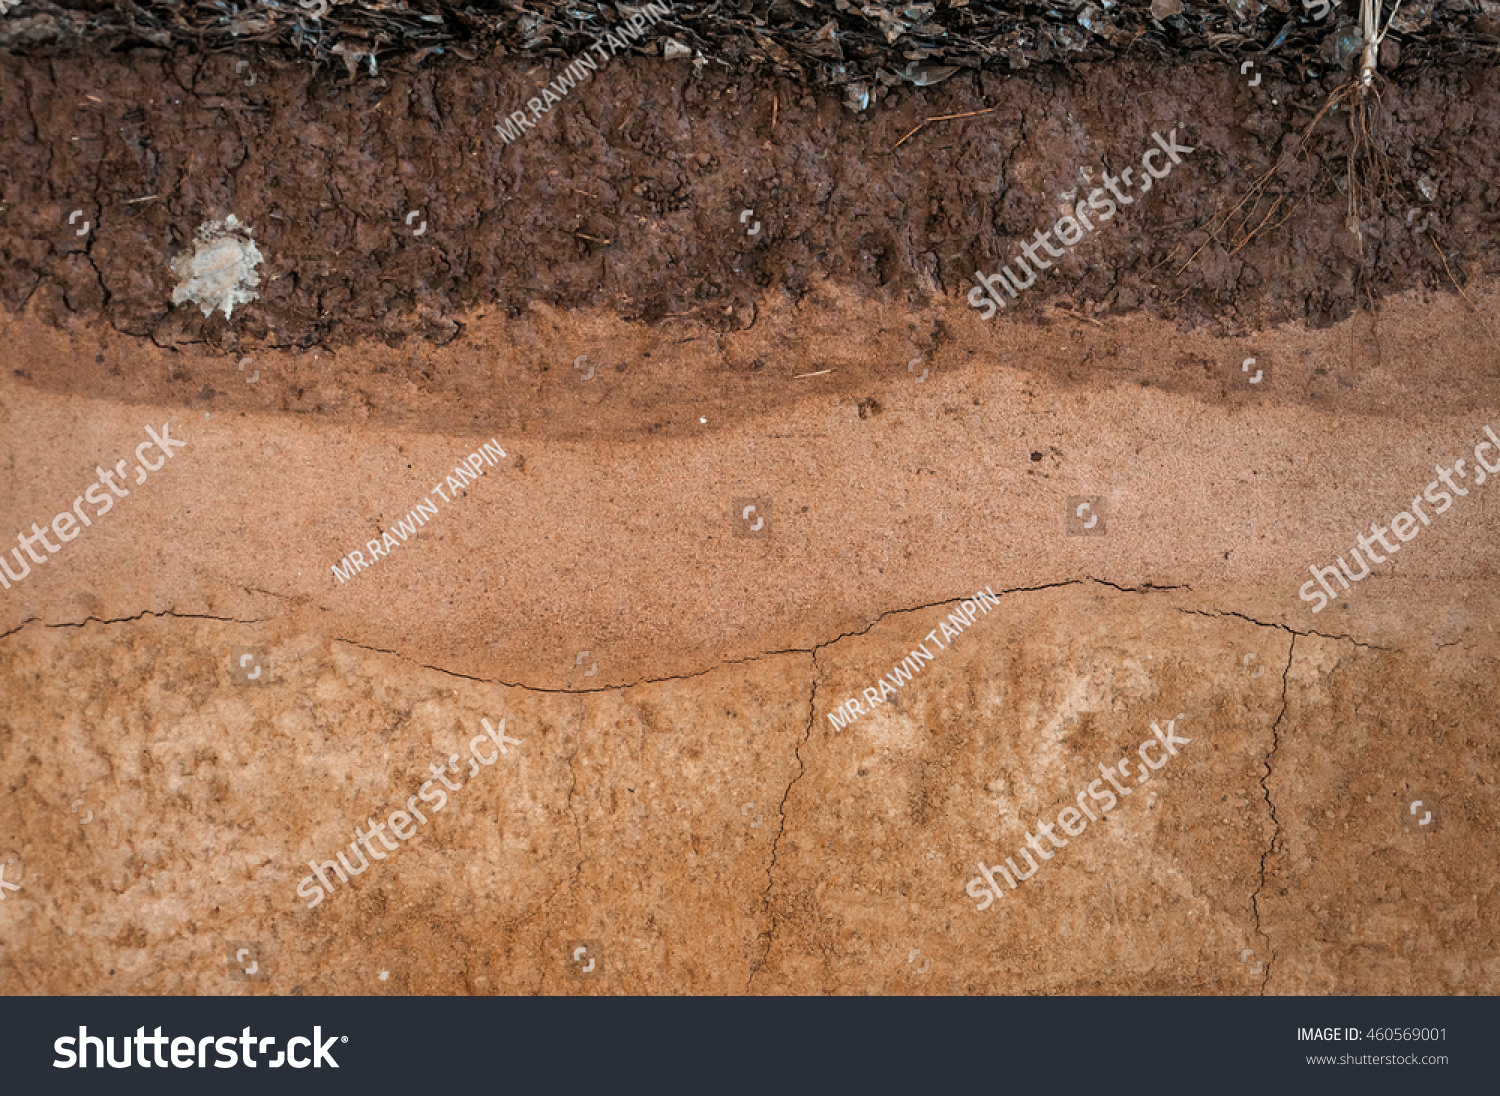 Form And Texture : Form soil layersits colour texturestexture layers stock